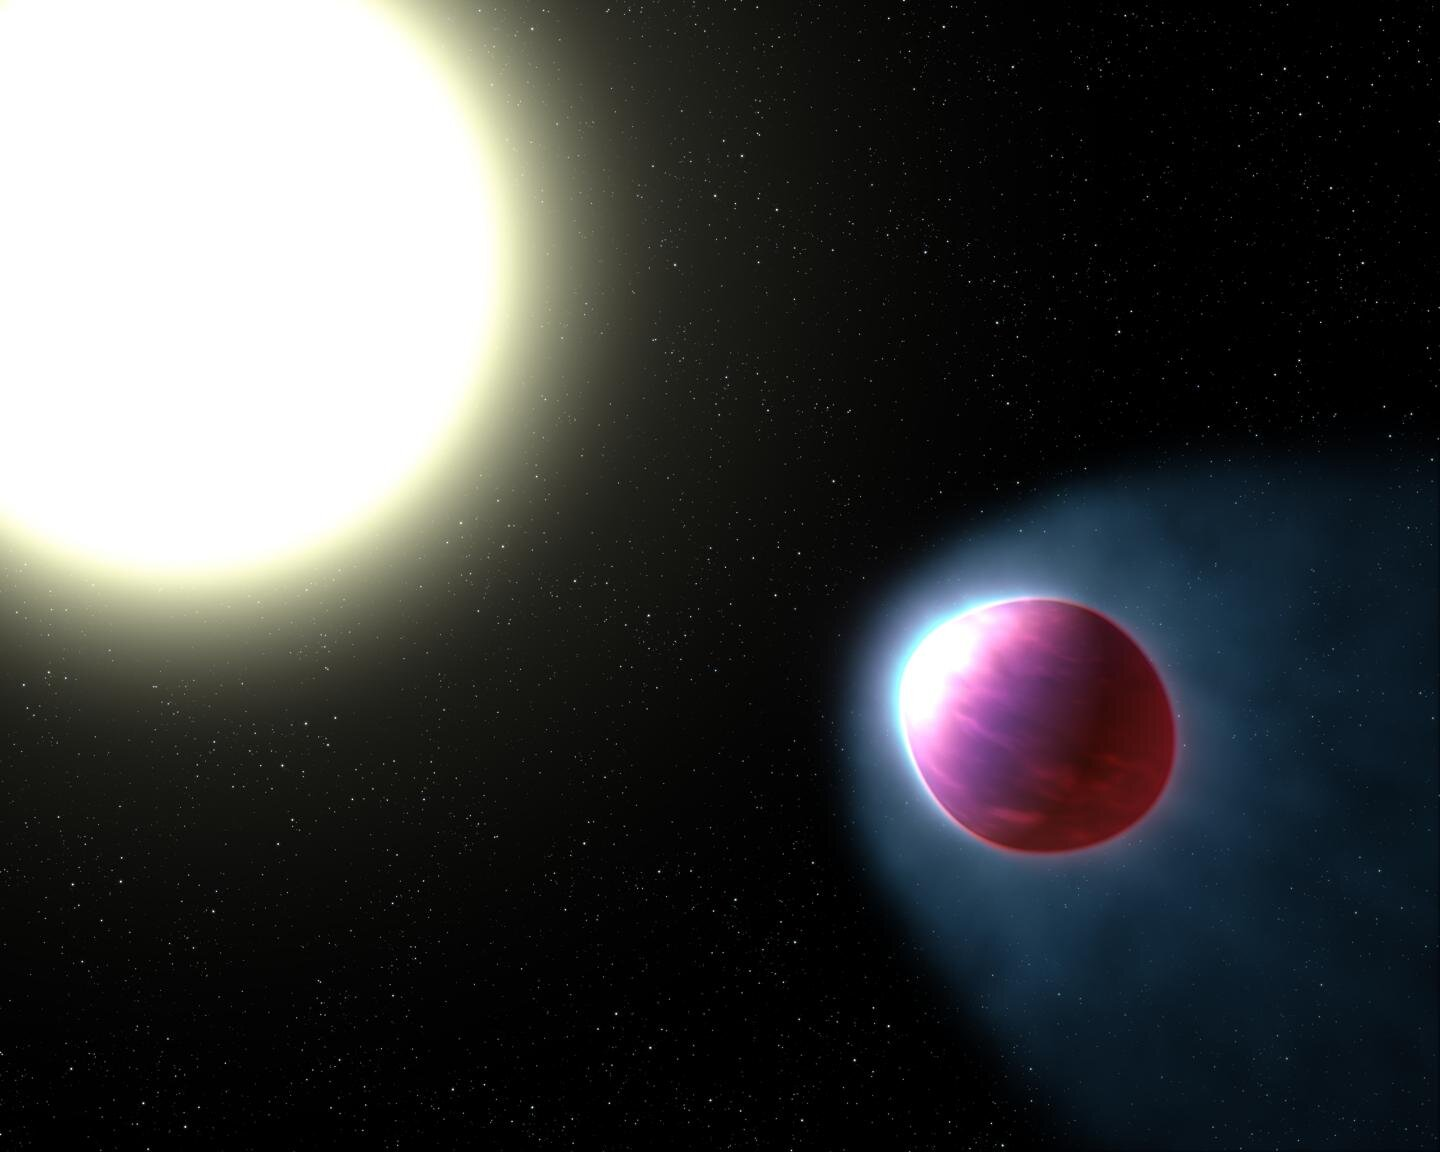 Finding vaporized metal in the air of an exoplanet